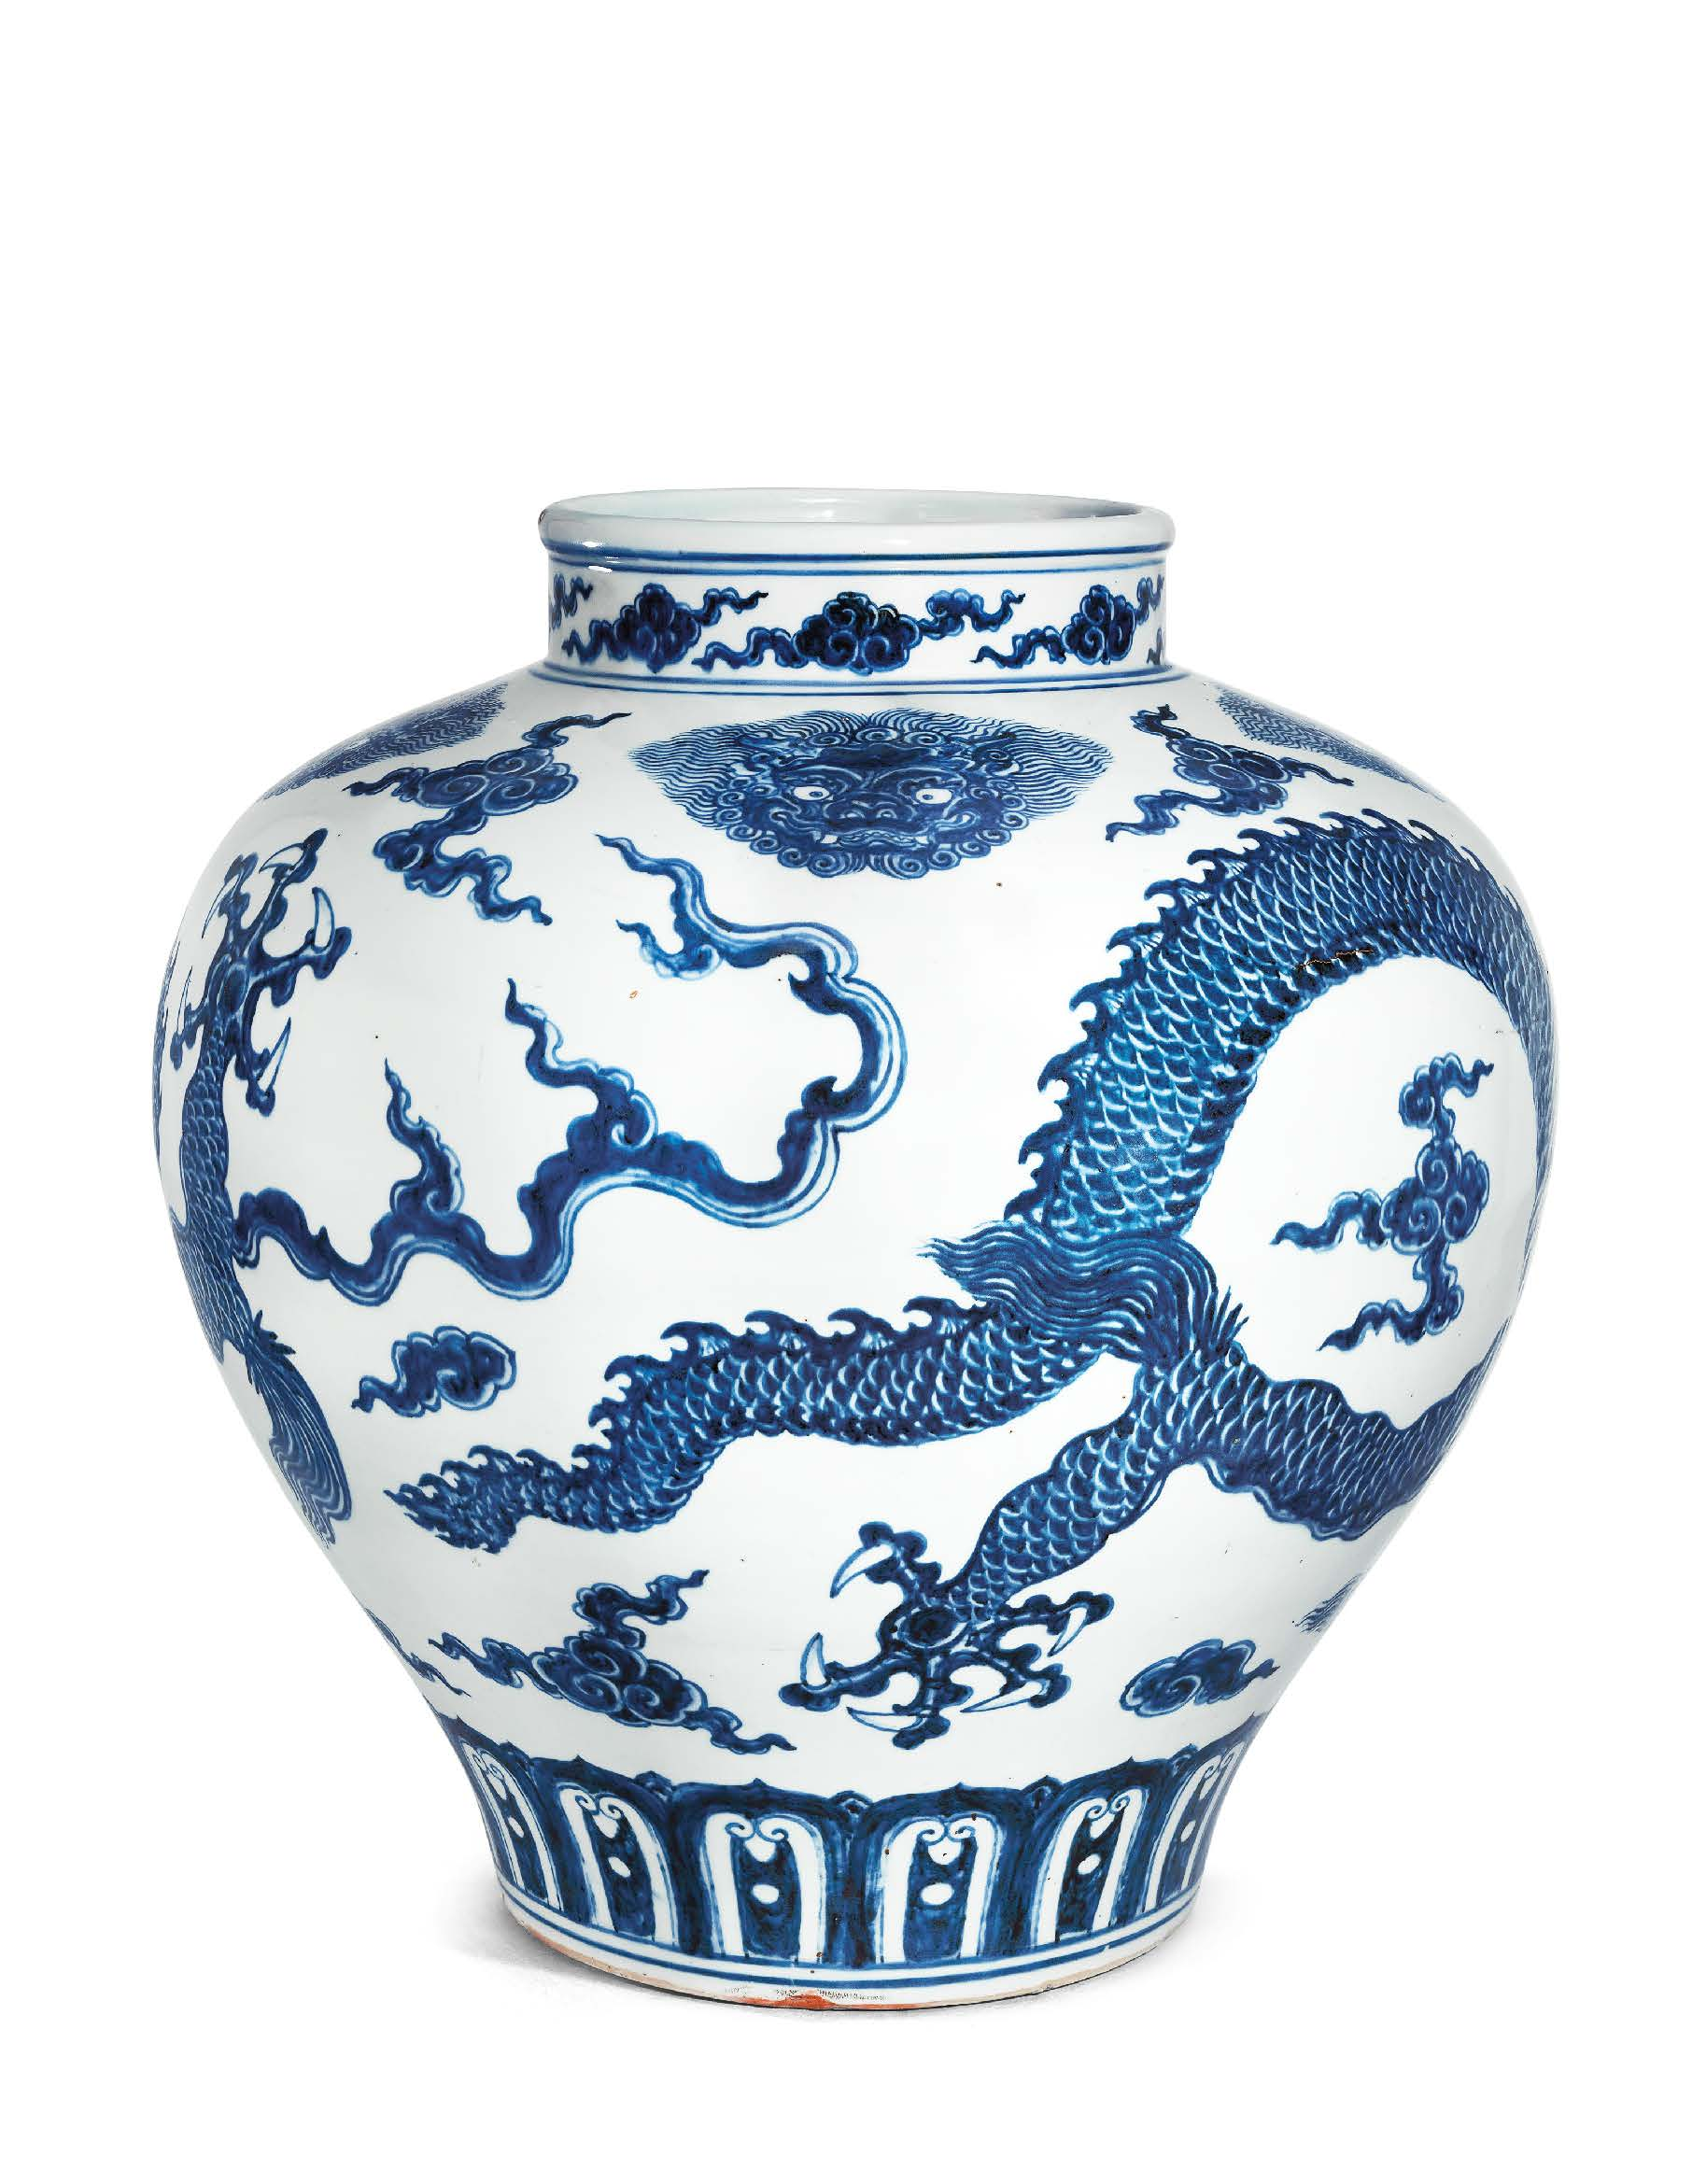 A MAGNIFICENT VERY RARE LARGE BLUE AND WHITE 'DRAGON' JAR, GUAN